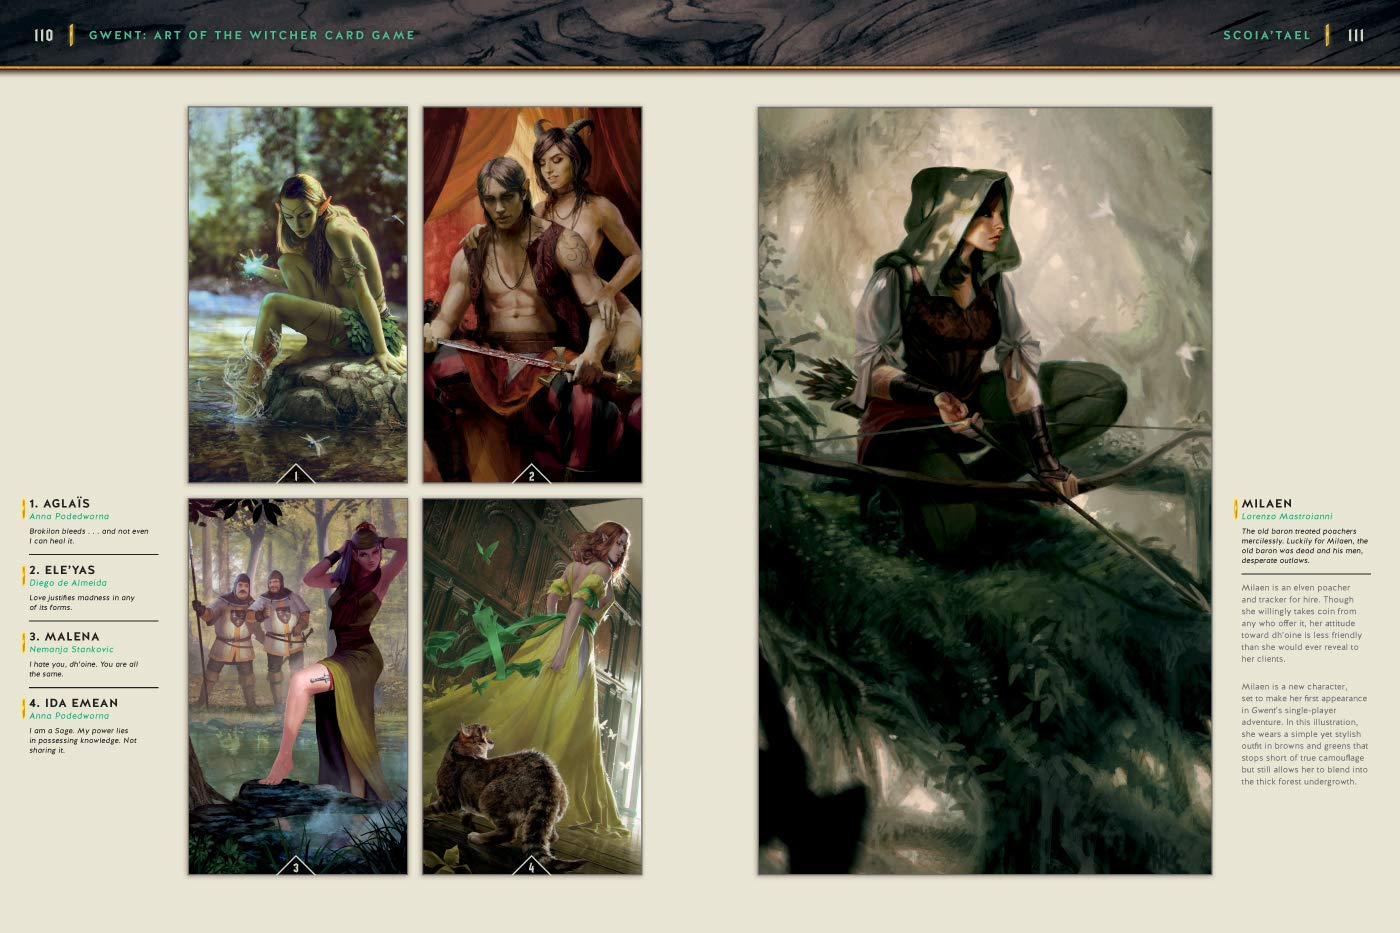 Art Of The Witcher Card Game, The: Gwent Gallery Collection ...